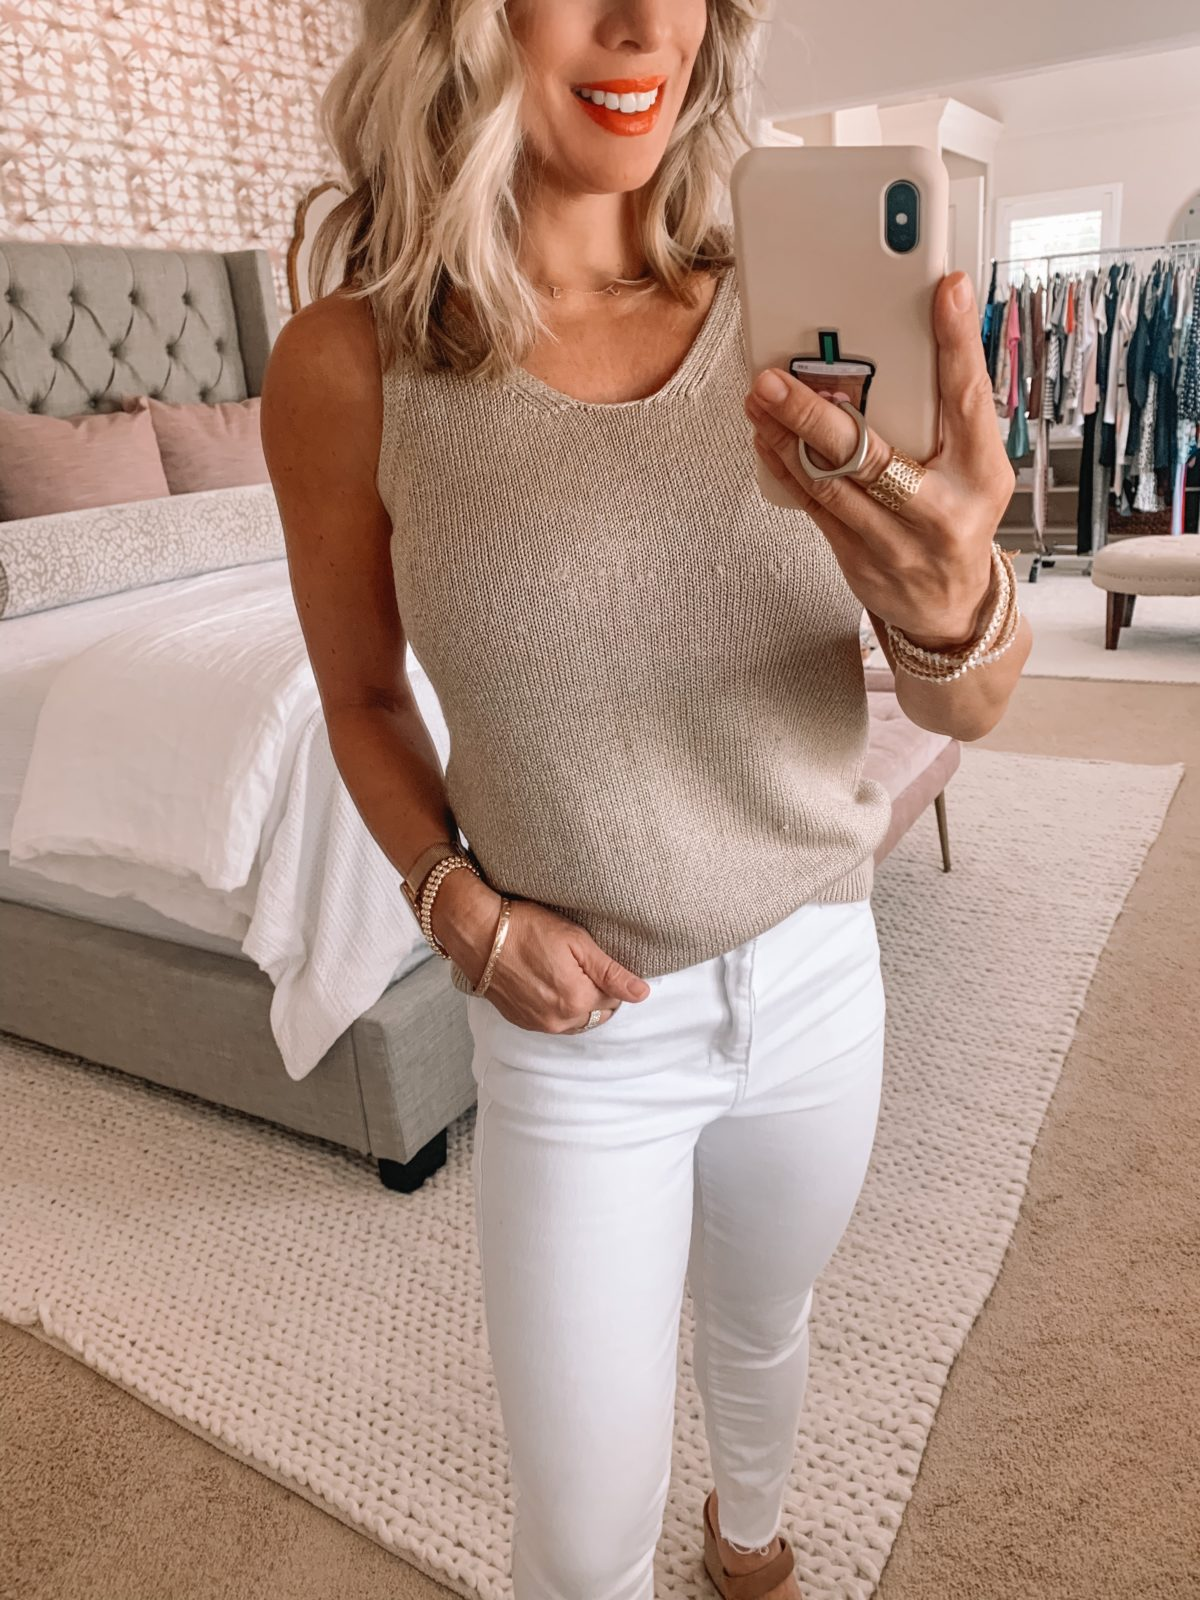 Summer Outfit - white jeans and sweater tank